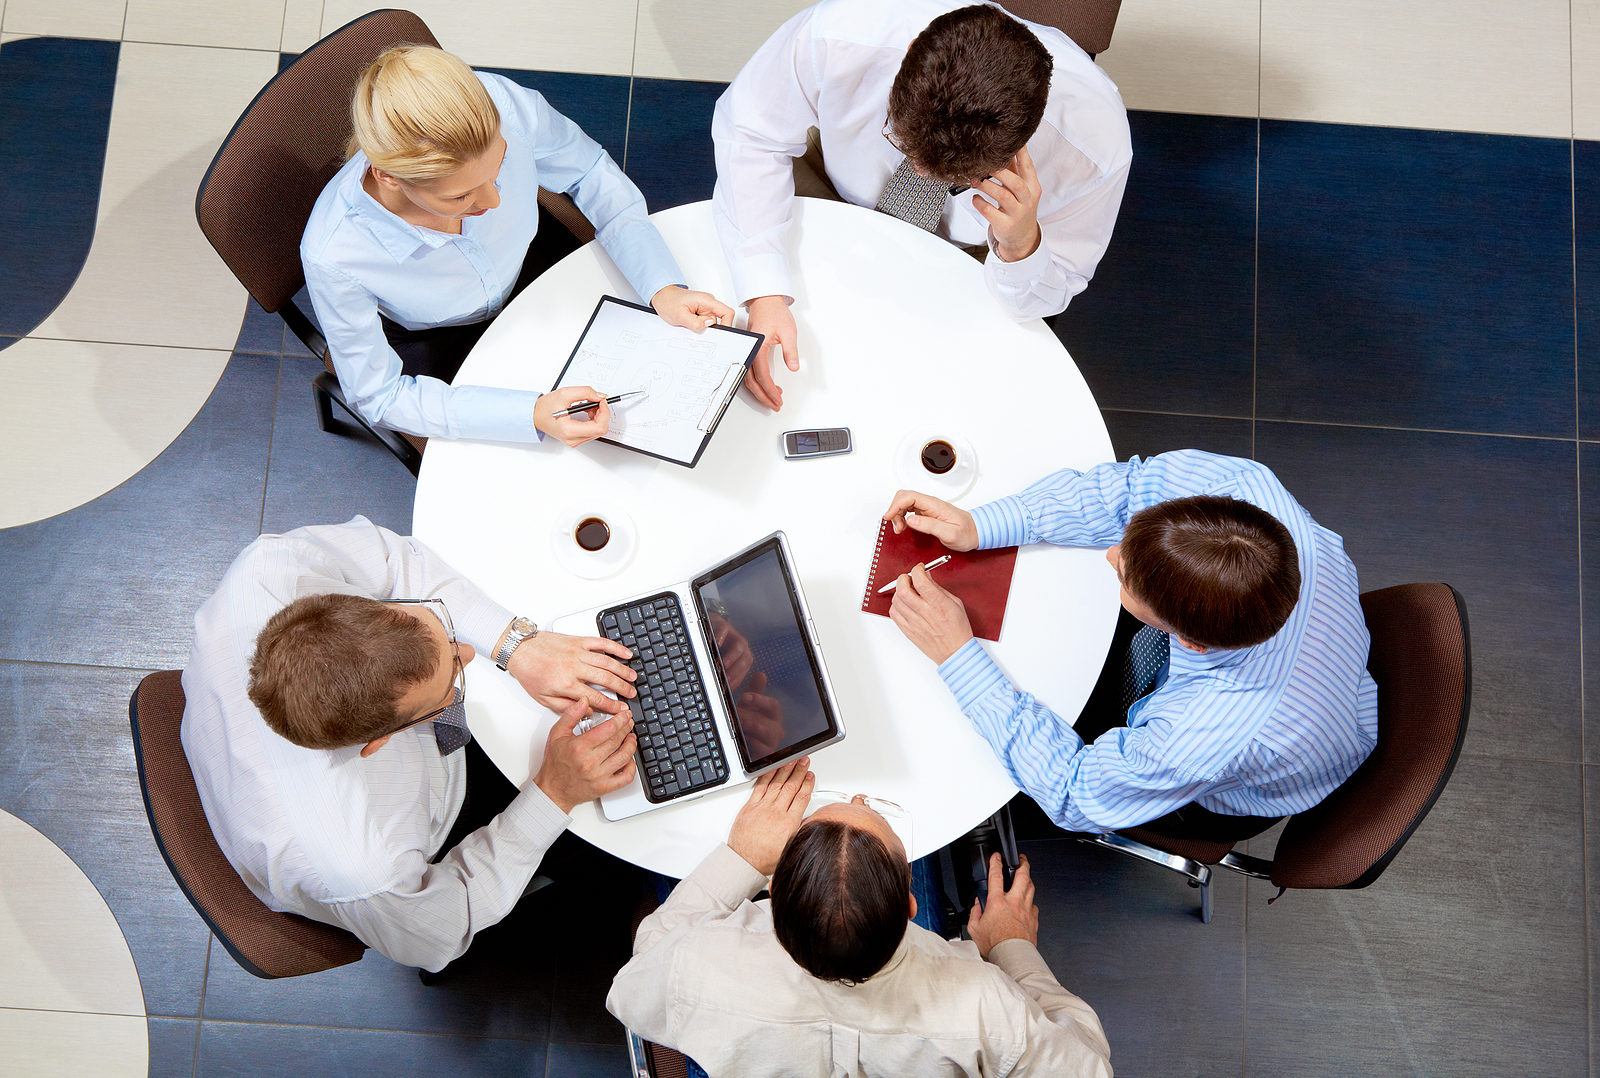 4 Top Tools for Effective Team Collaboration in the Workplace